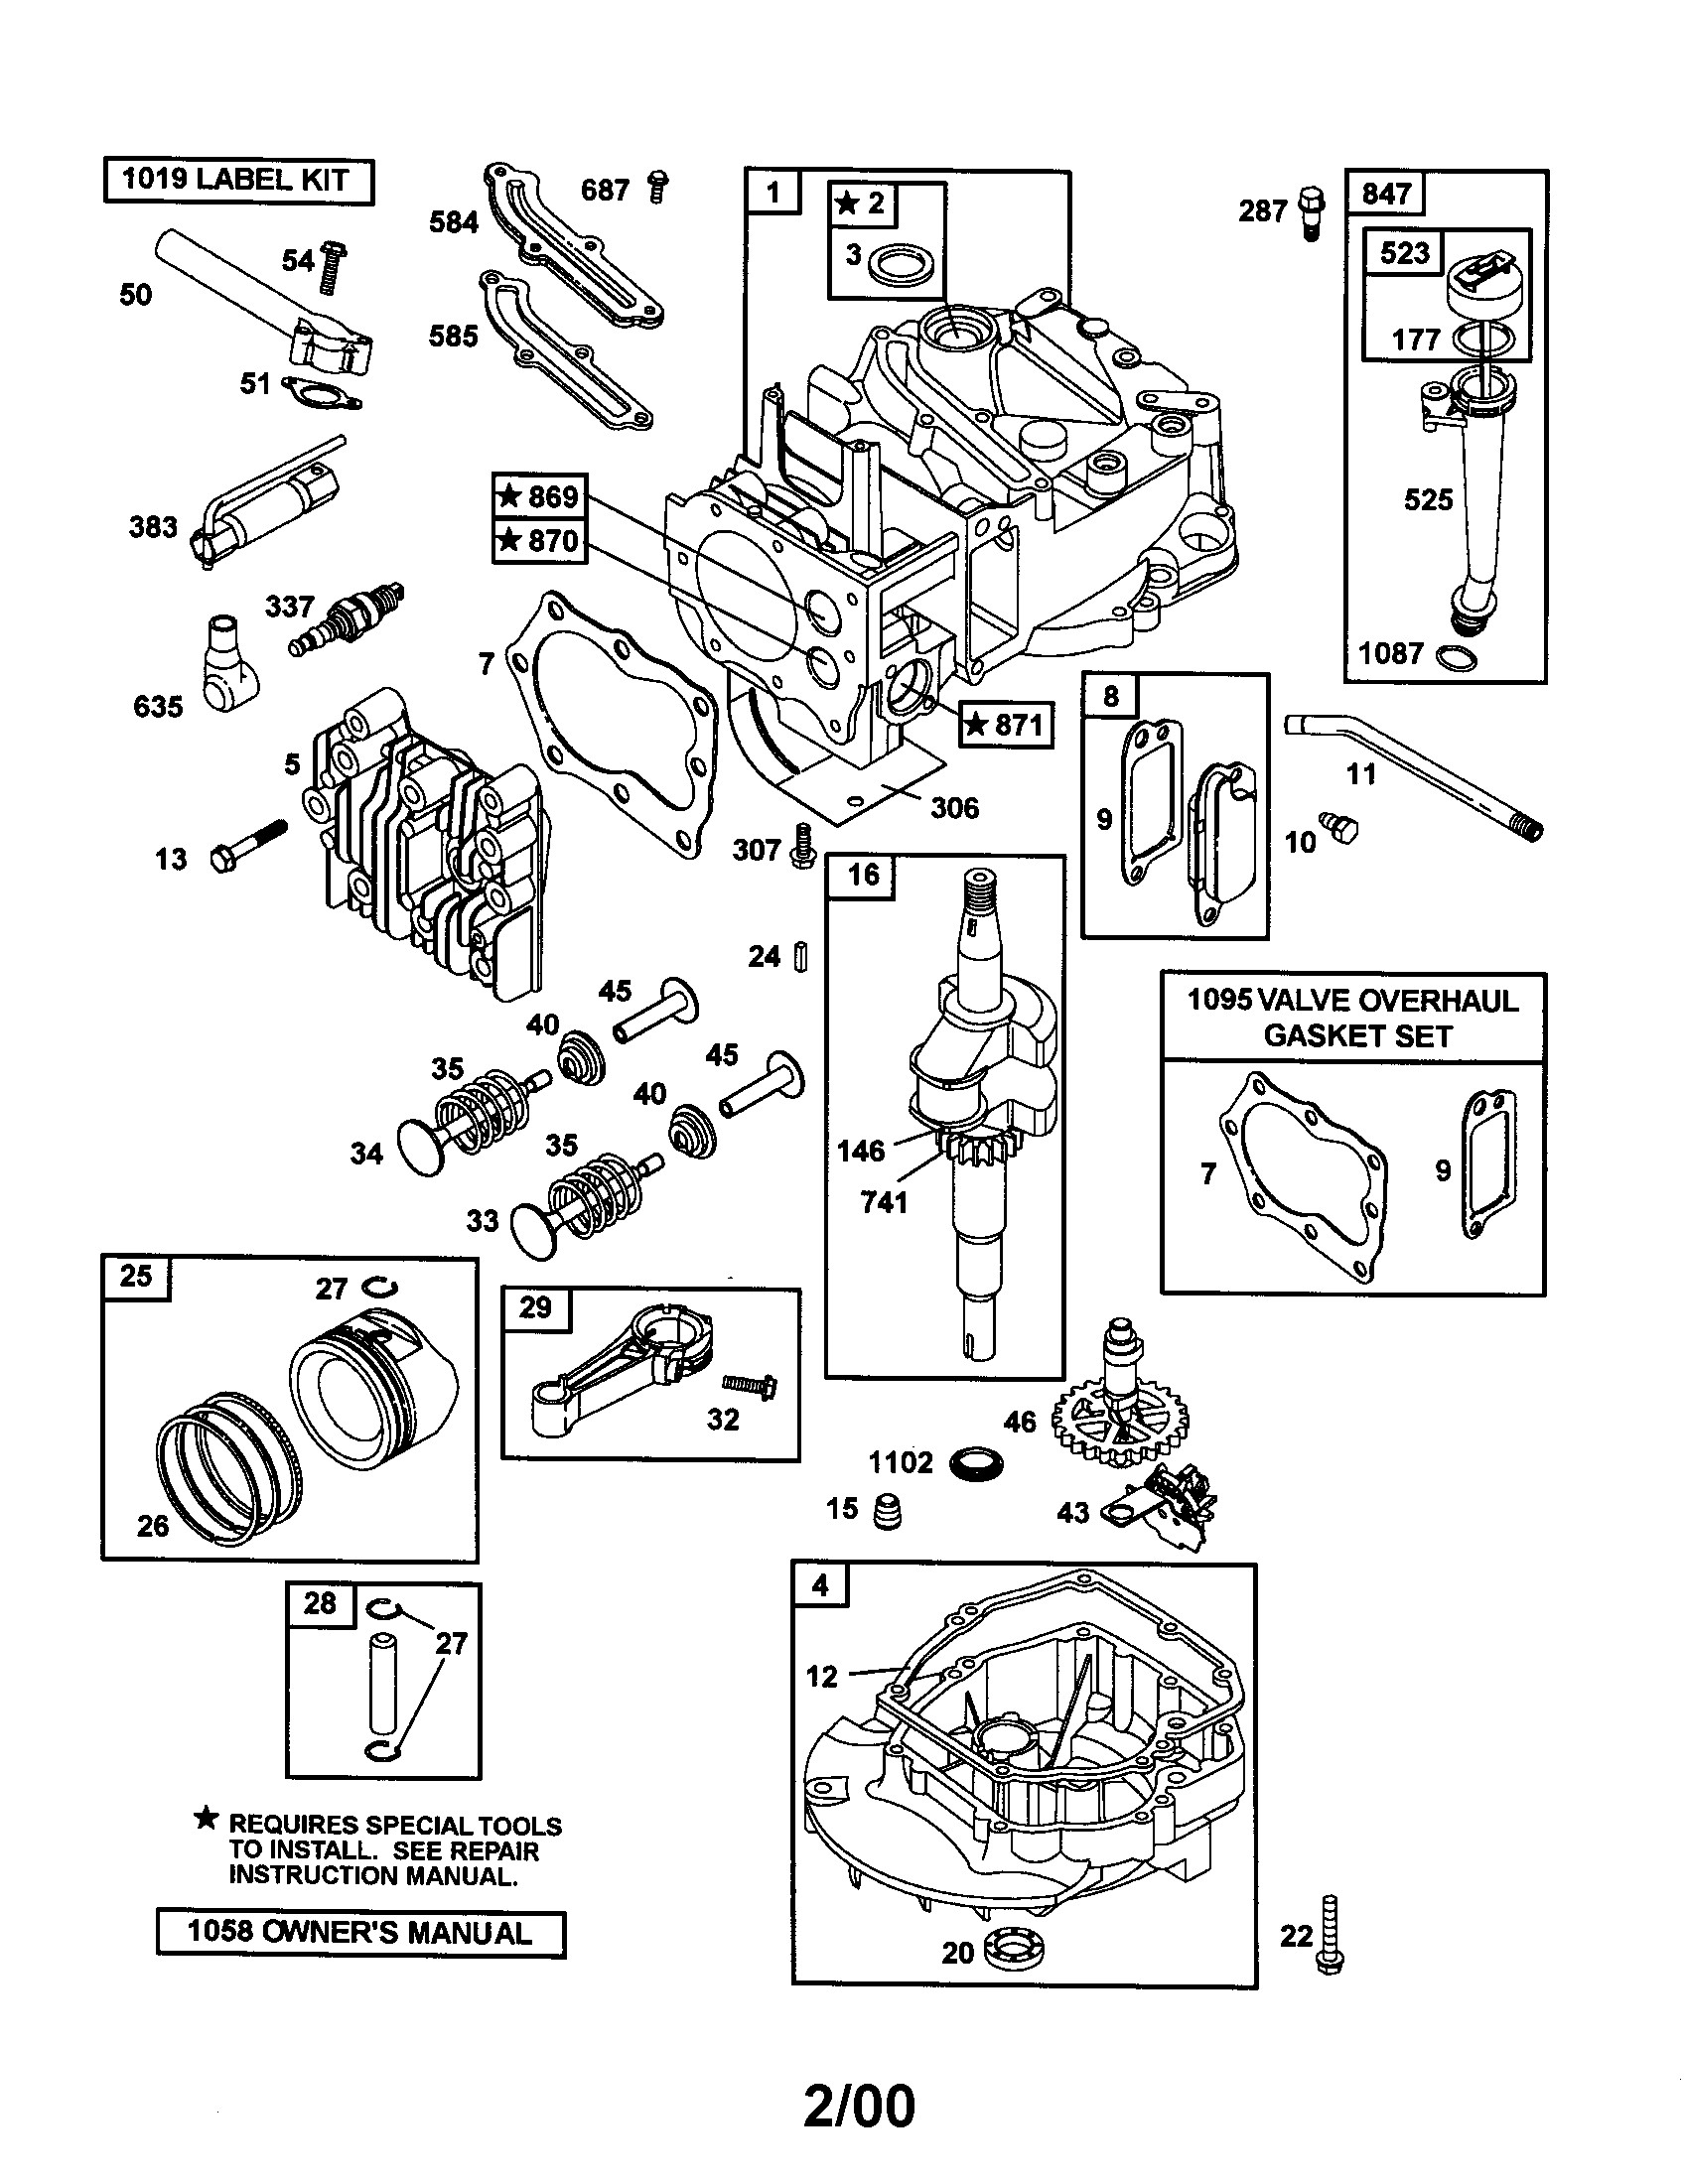 11 Hp Briggs and Stratton Engine Diagram Amazing Briggs Stratton Engine  Parts Diagram Ideas Electrical Of